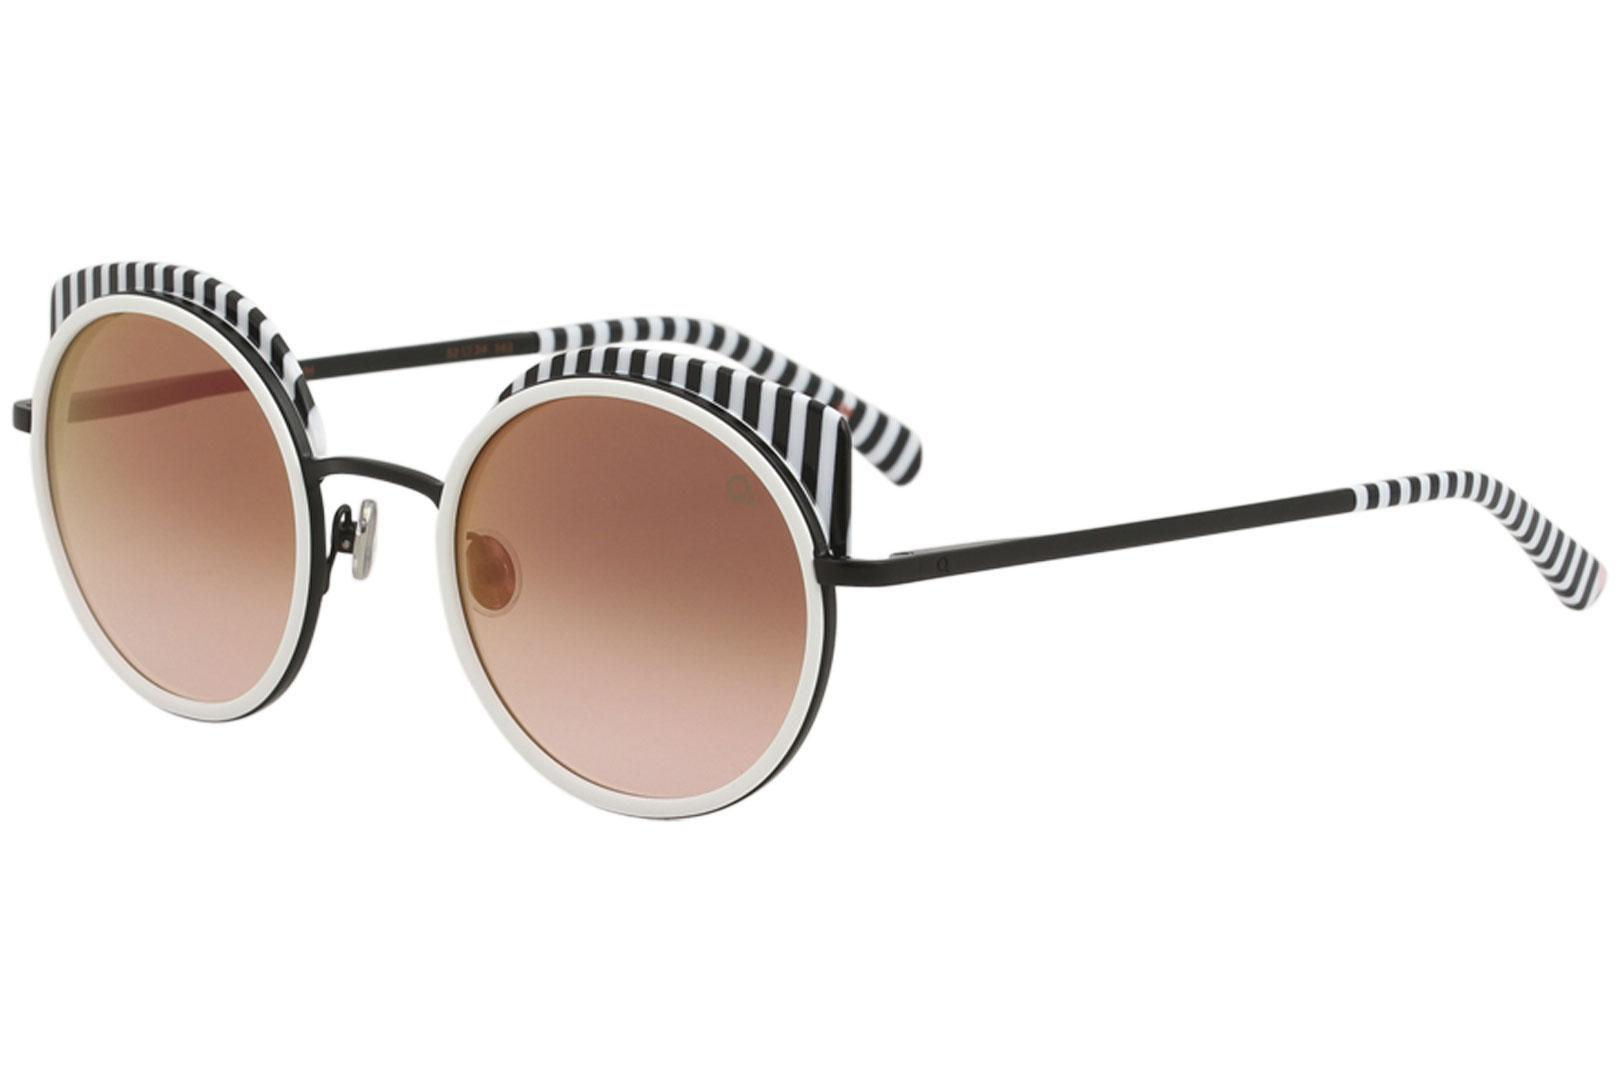 Image of Etnia Barcelona Spiga Fashion Round Sunglasses - Black White/Pink Gradient   BKWH - Lens 52 Bridge 24 Temple 143mm